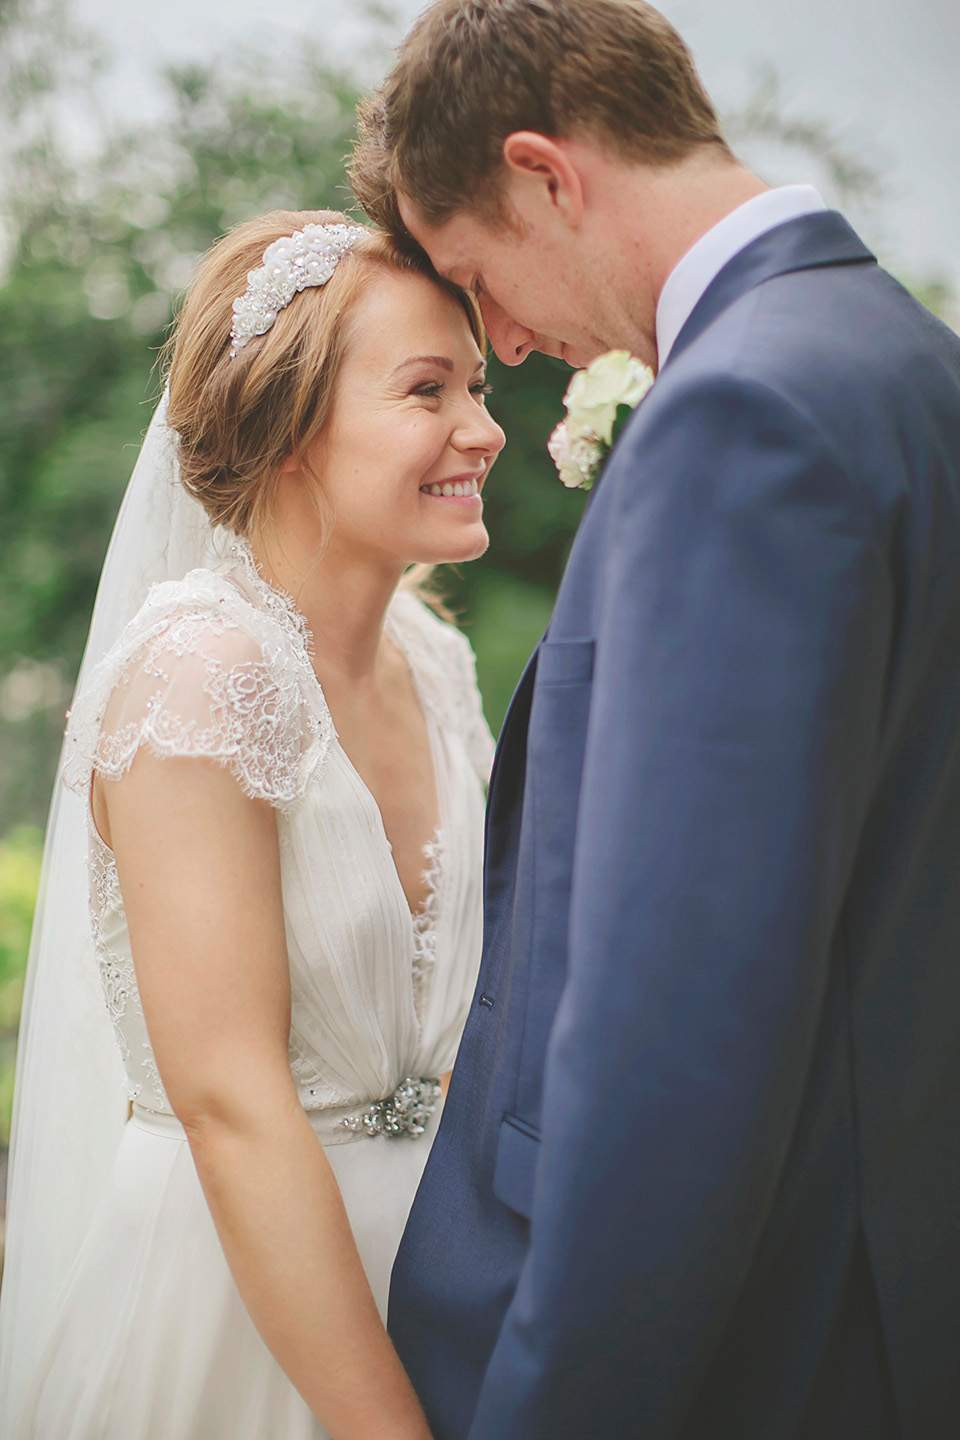 Jenny Packham's 'Dentelle' for a Rose Pink and Romantic Summer Wedding